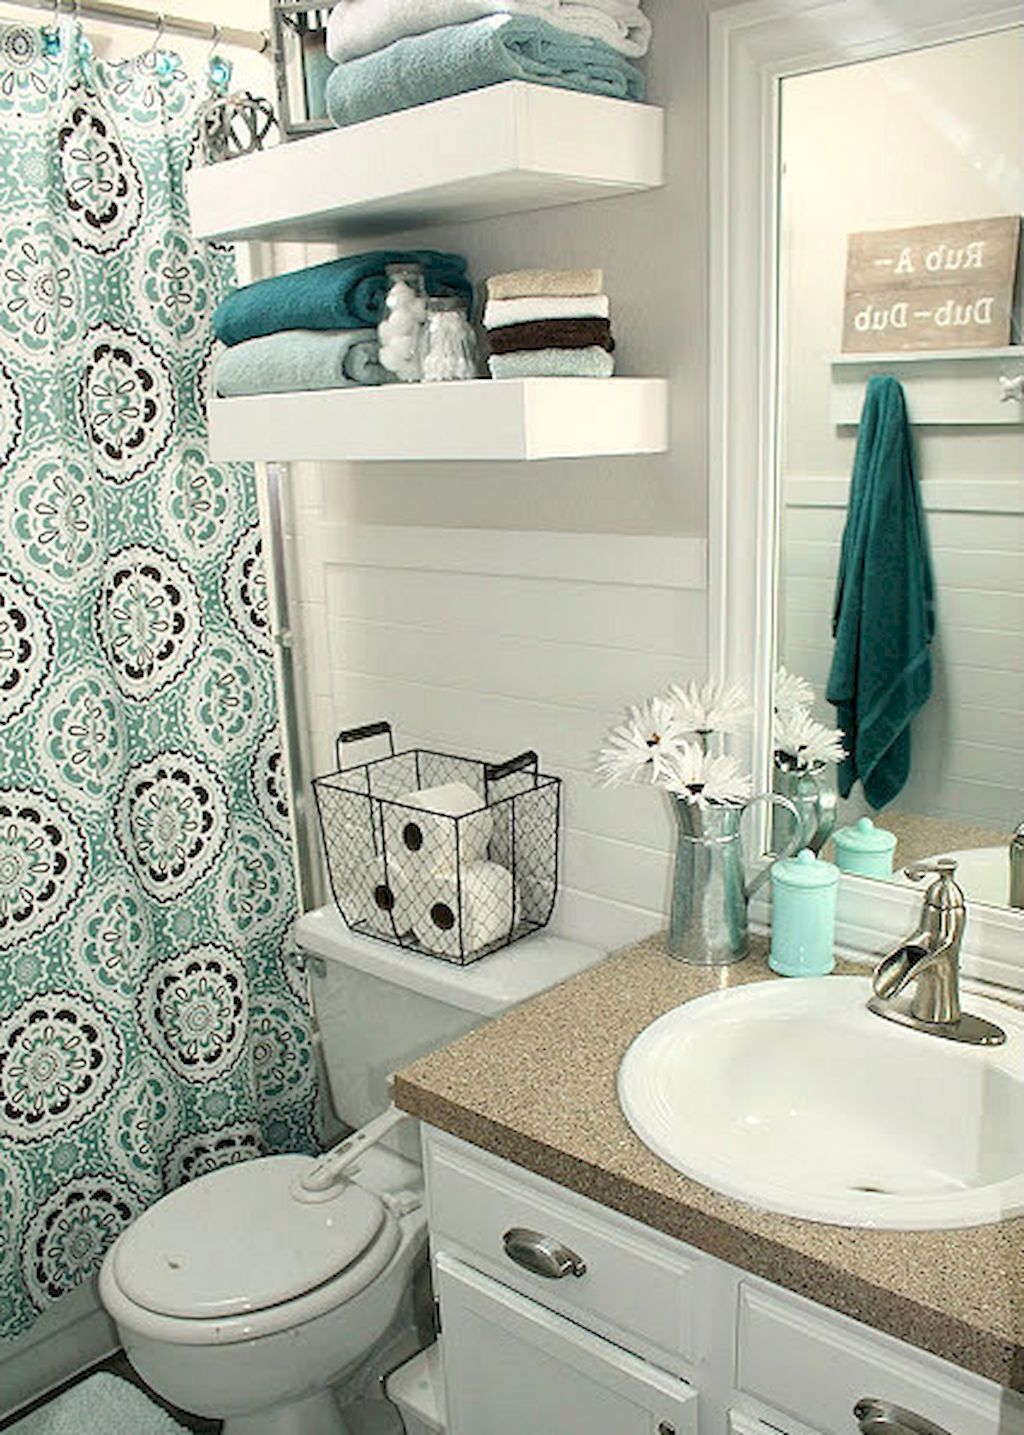 apartment bathroom themes adorable 30 diy small apartment decorating ideas on a 966